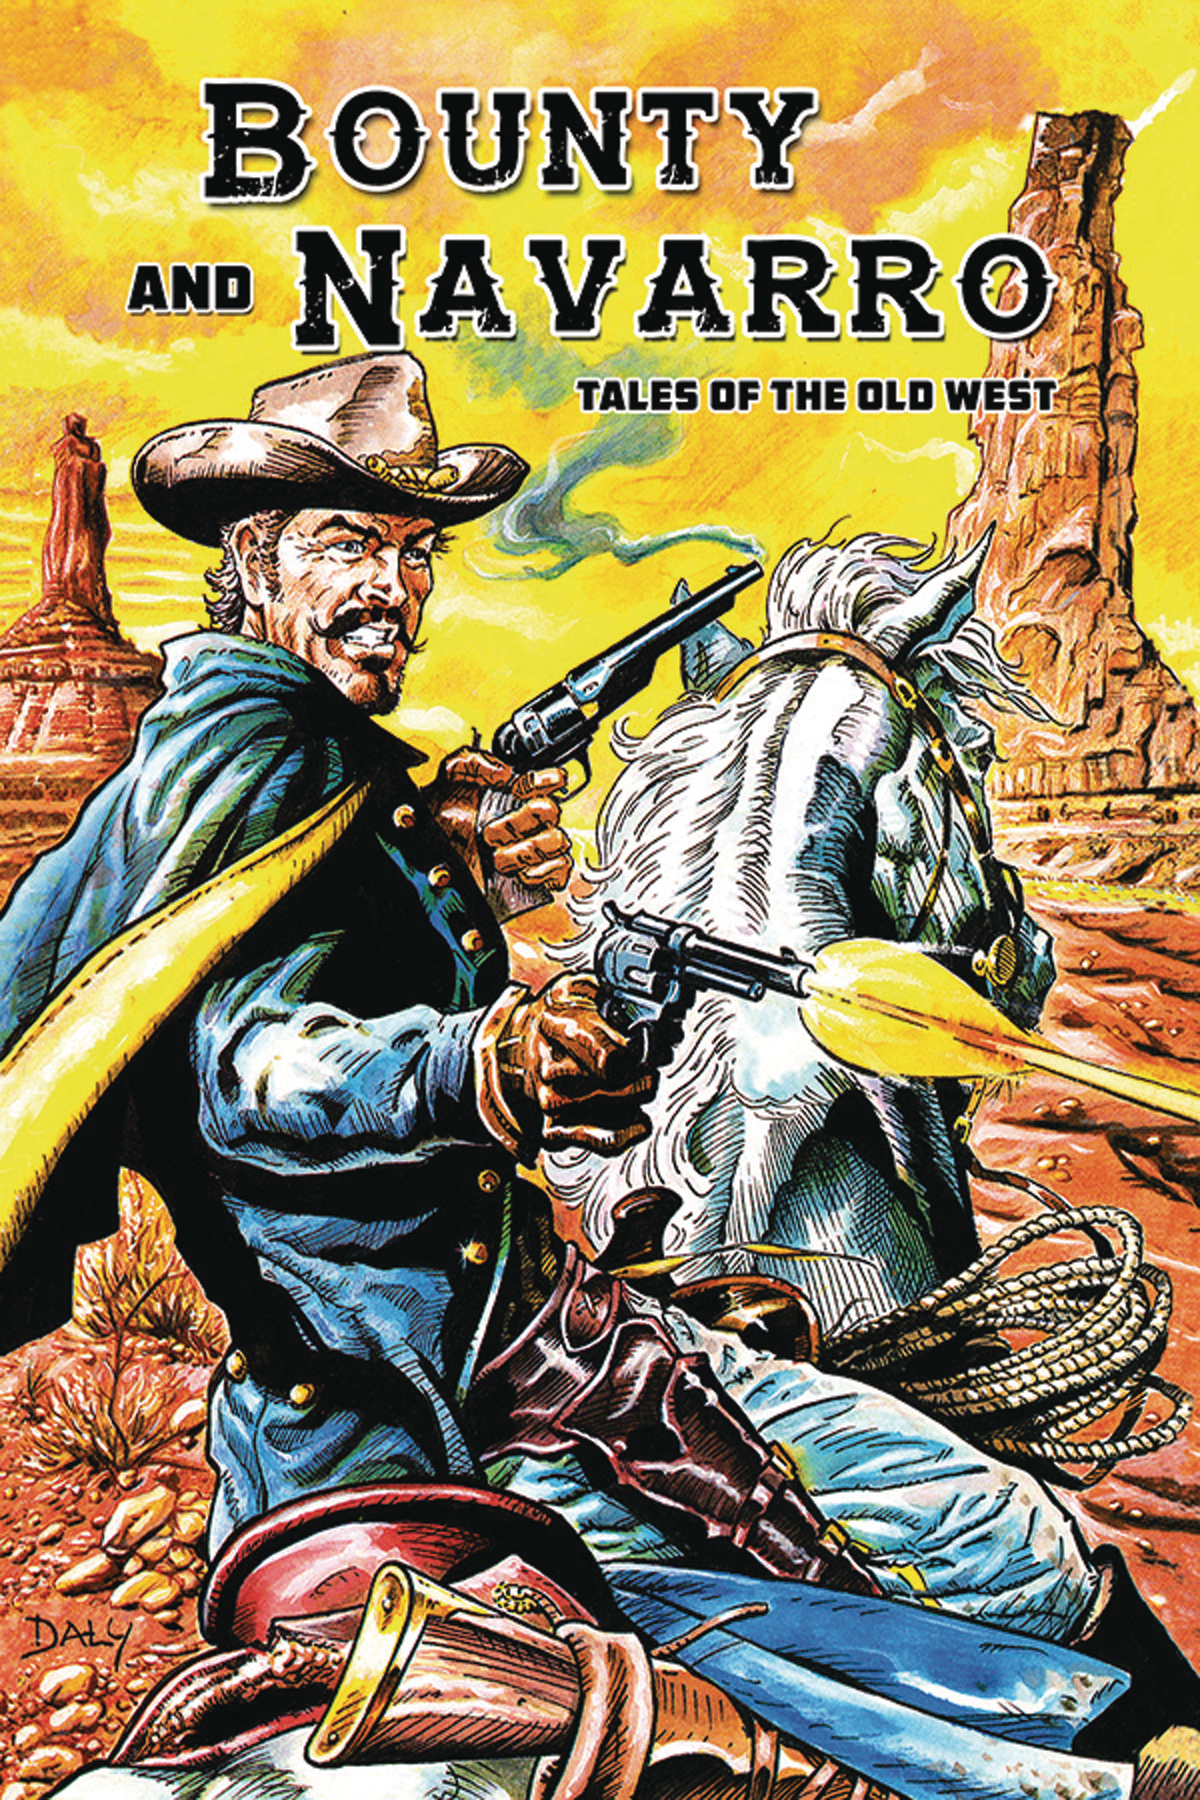 BOUNTY AND NAVARRO TALES OF THE OLD WEST GN